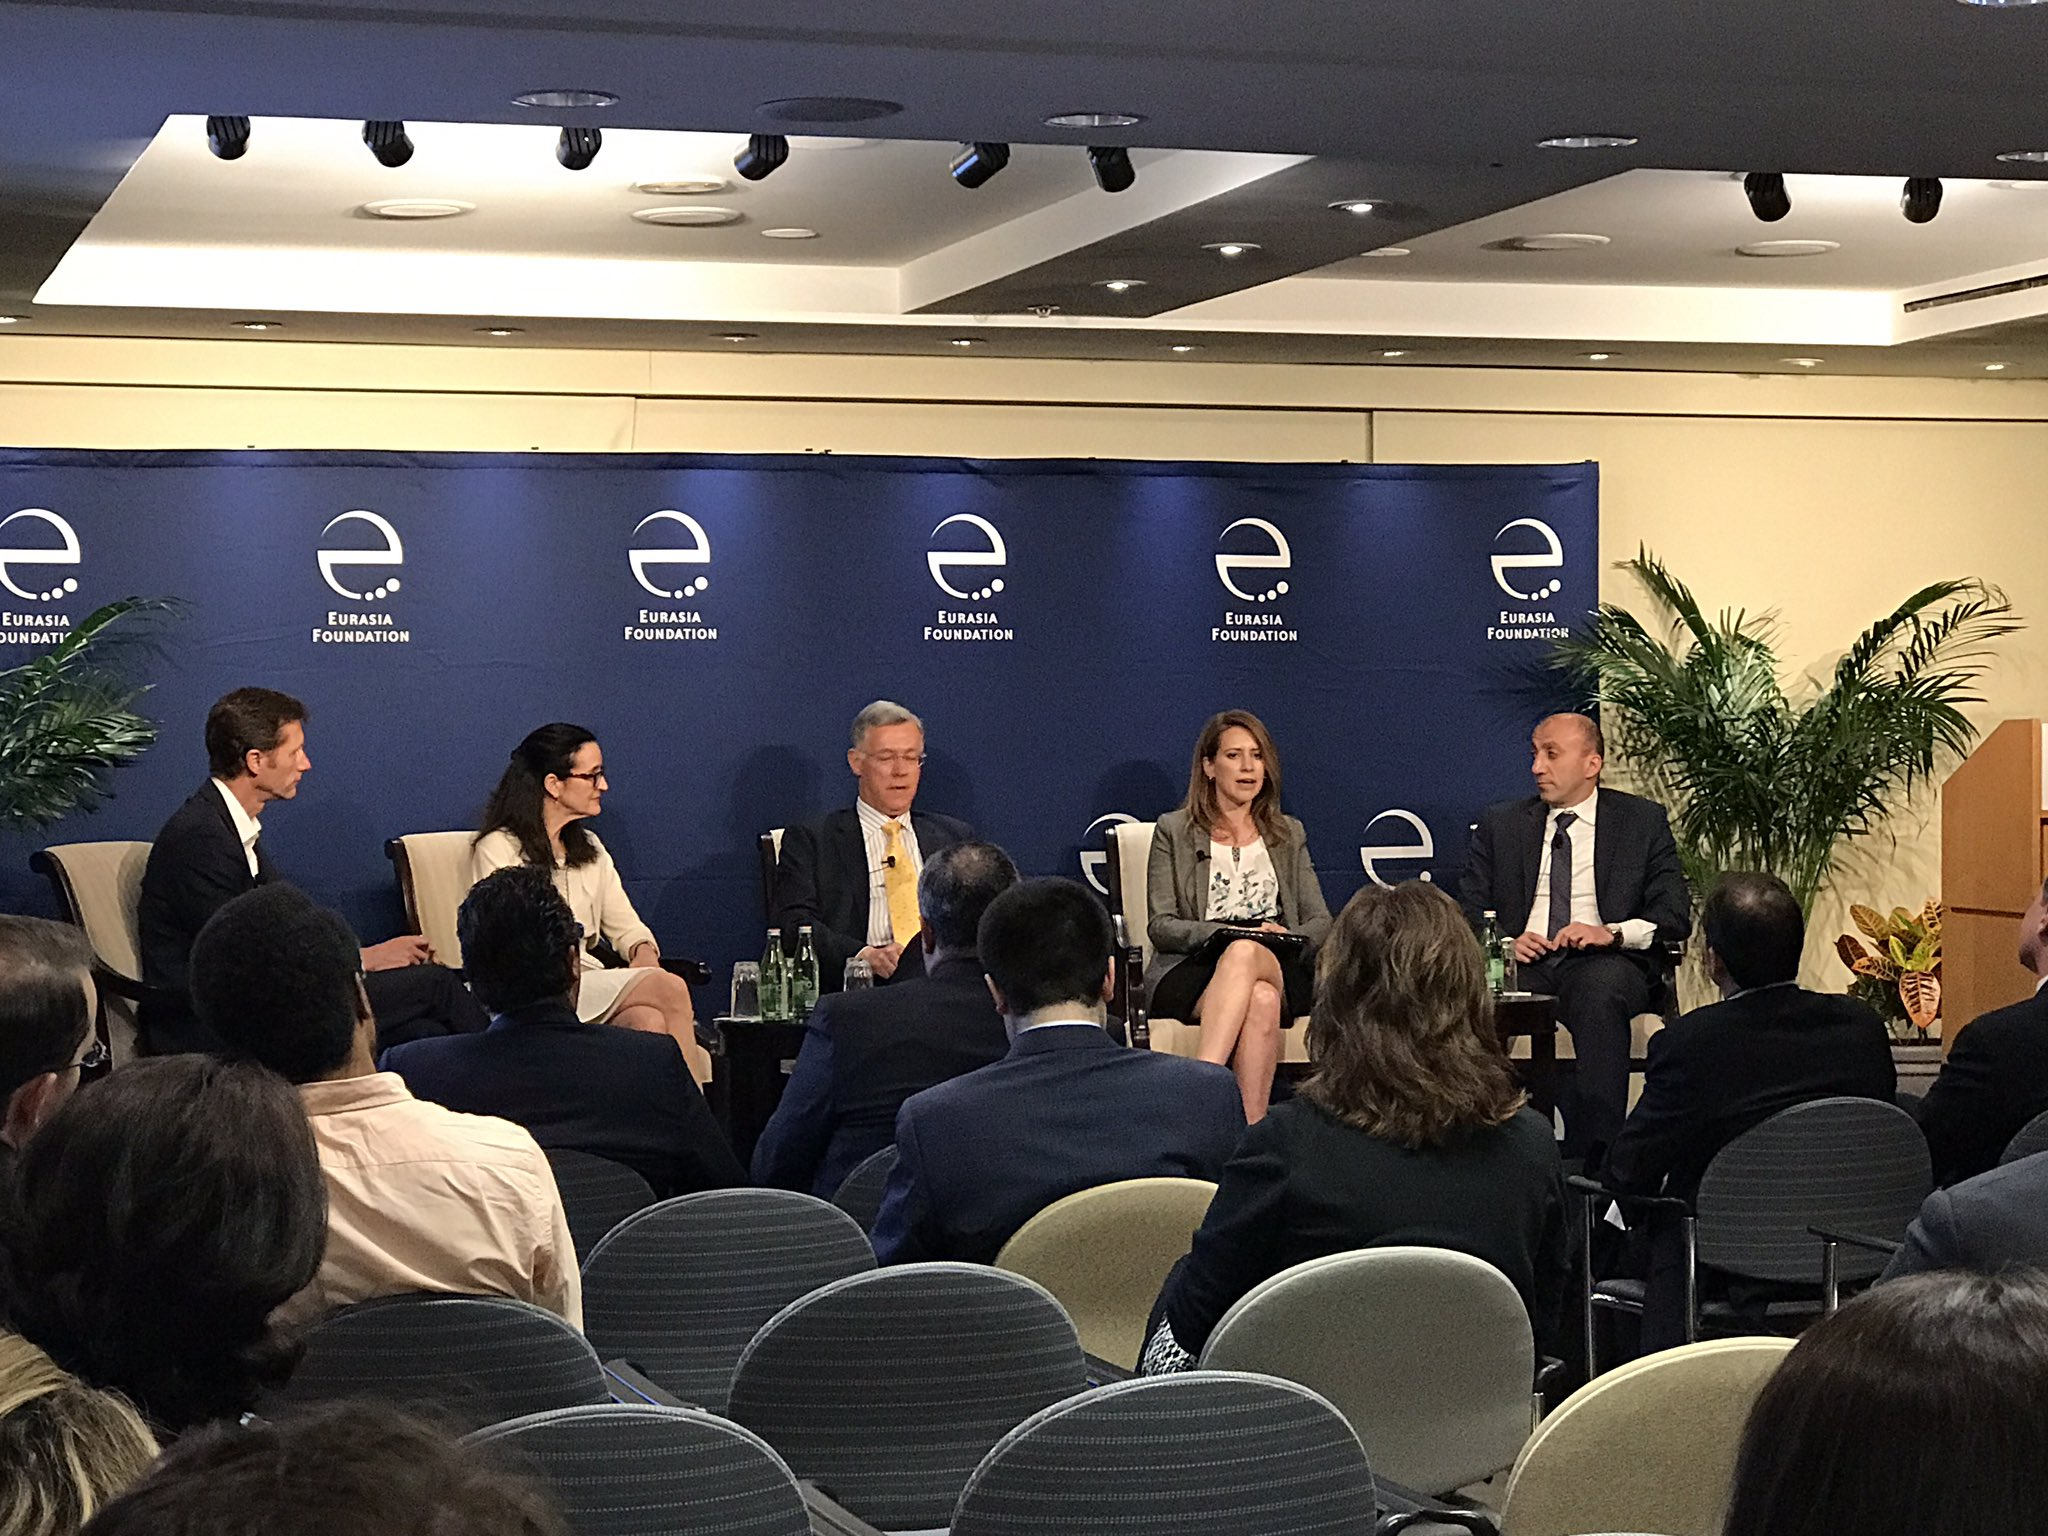 @EFNetwork #Georgia is considered as a star among the eurasian countries @Expanding Risk Capital for Small Businesses in Eurasia panel https://t.co/40cUNFVKd1